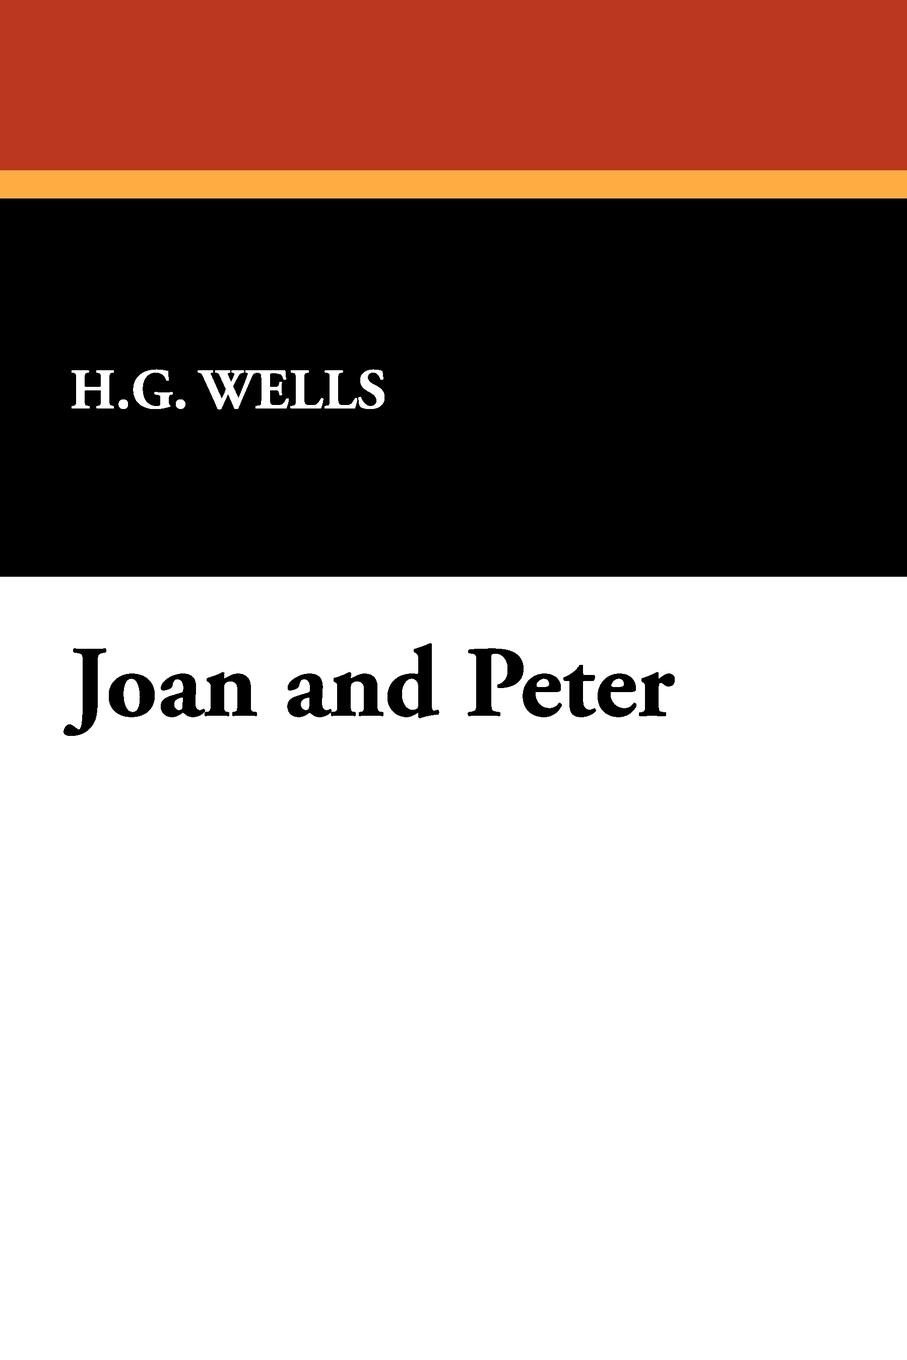 H.G. Wells Joan and Peter h g wells